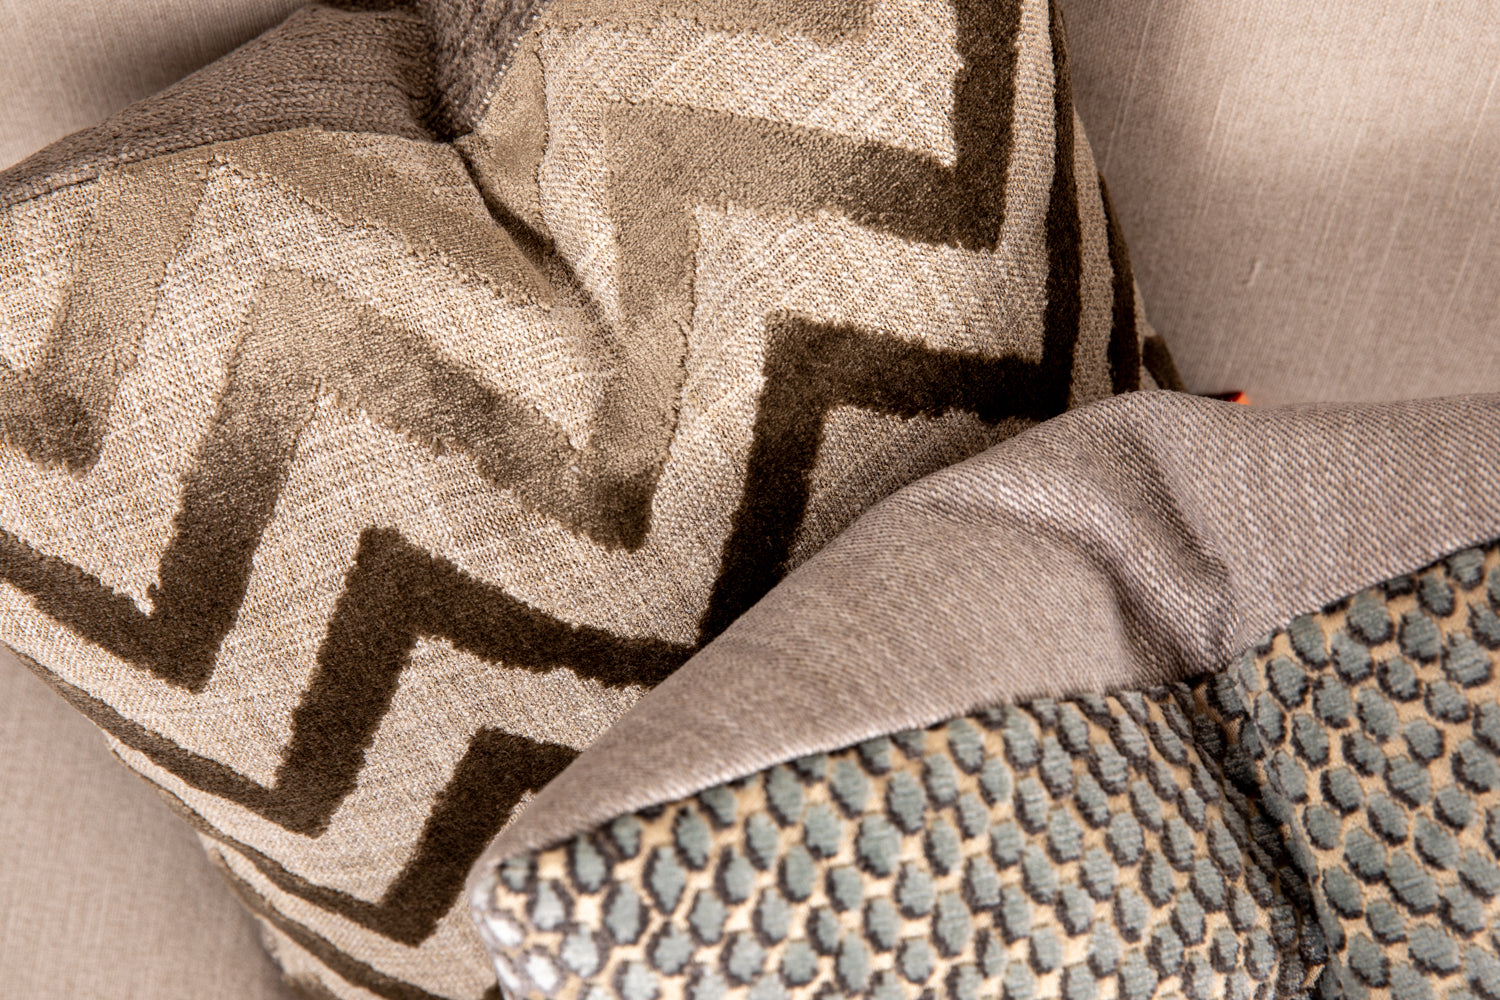 ffabb toss pillows, RADG & Maxwell fabrics, chevron & animal print